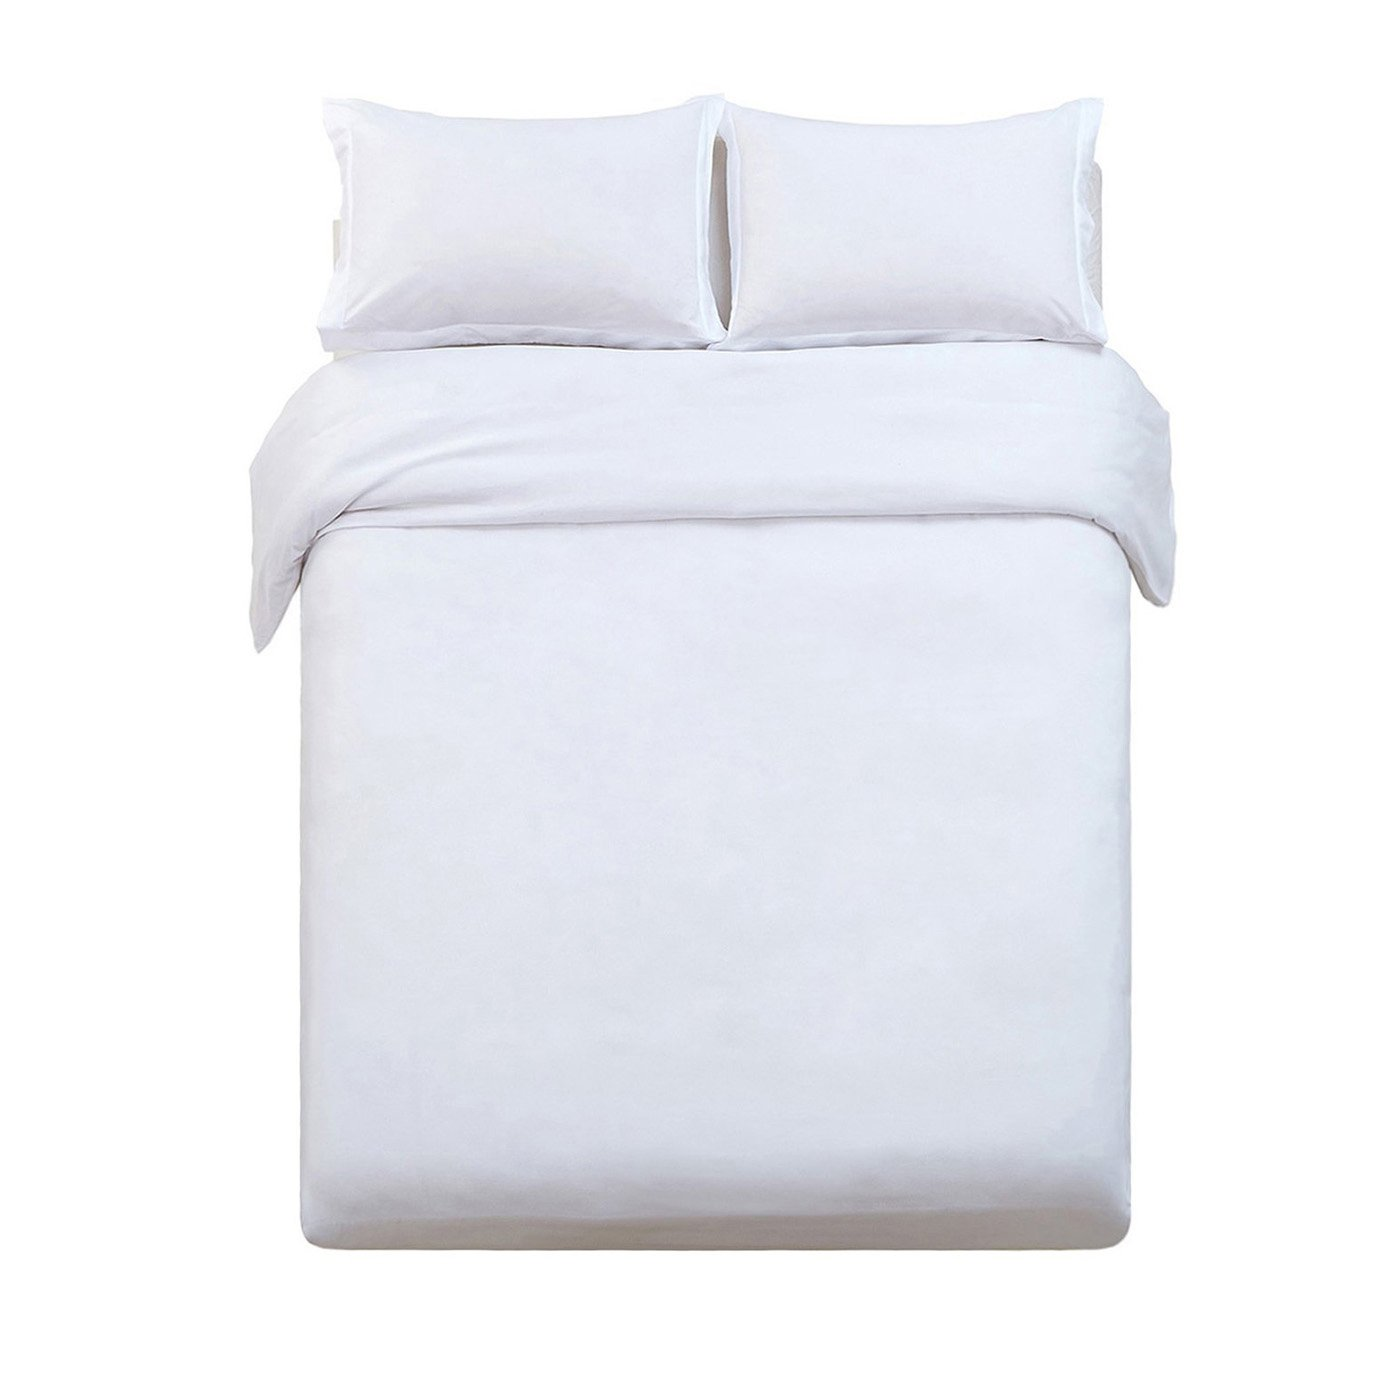 Word of Dream Brushed Microfiber 2 PC Solid Duvet Cover Set, Twin, White